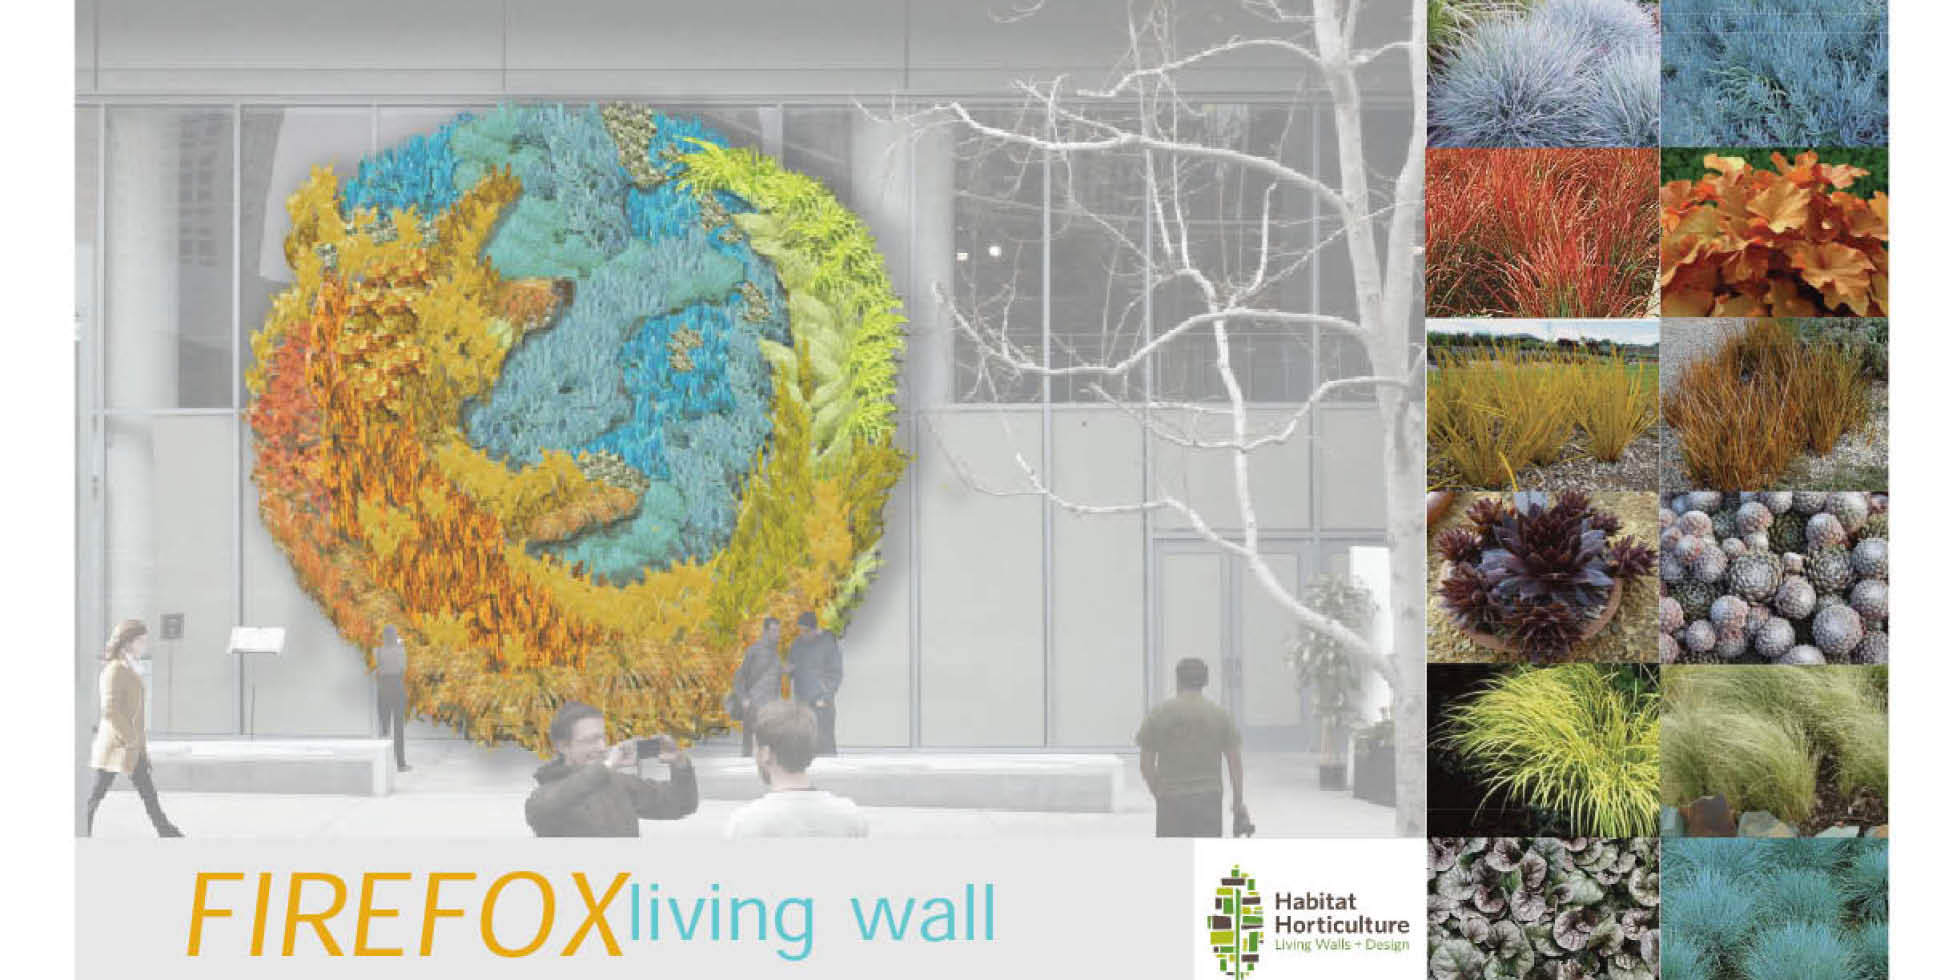 Mozilla Firefox Living Wall by Habitat Horticulture - View 1